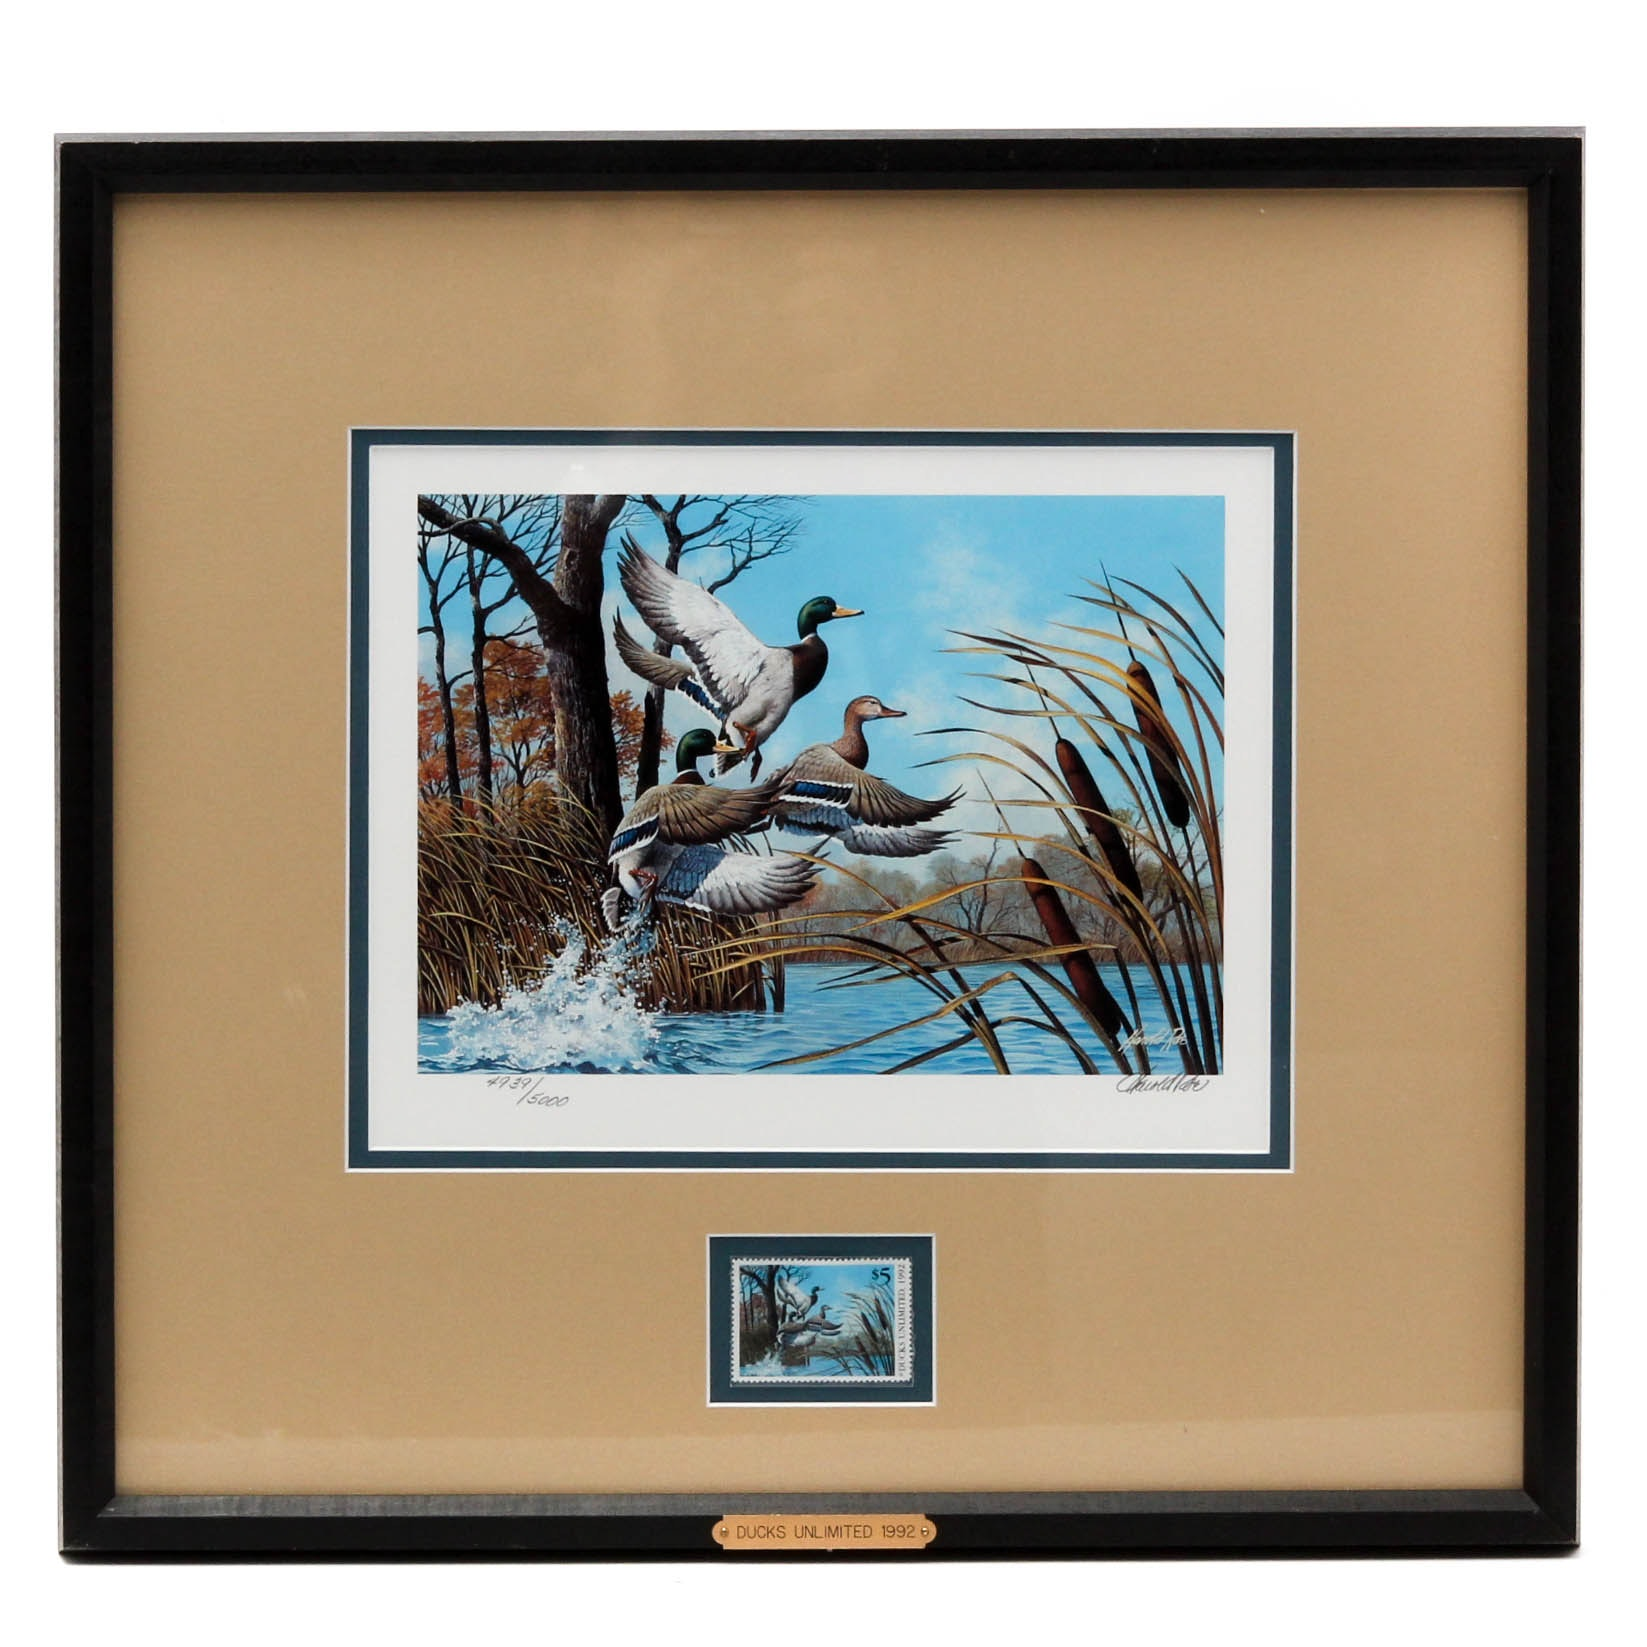 Harold Roe 1992 Ducks Unlimited $5 Stamp and Offset Lithograph